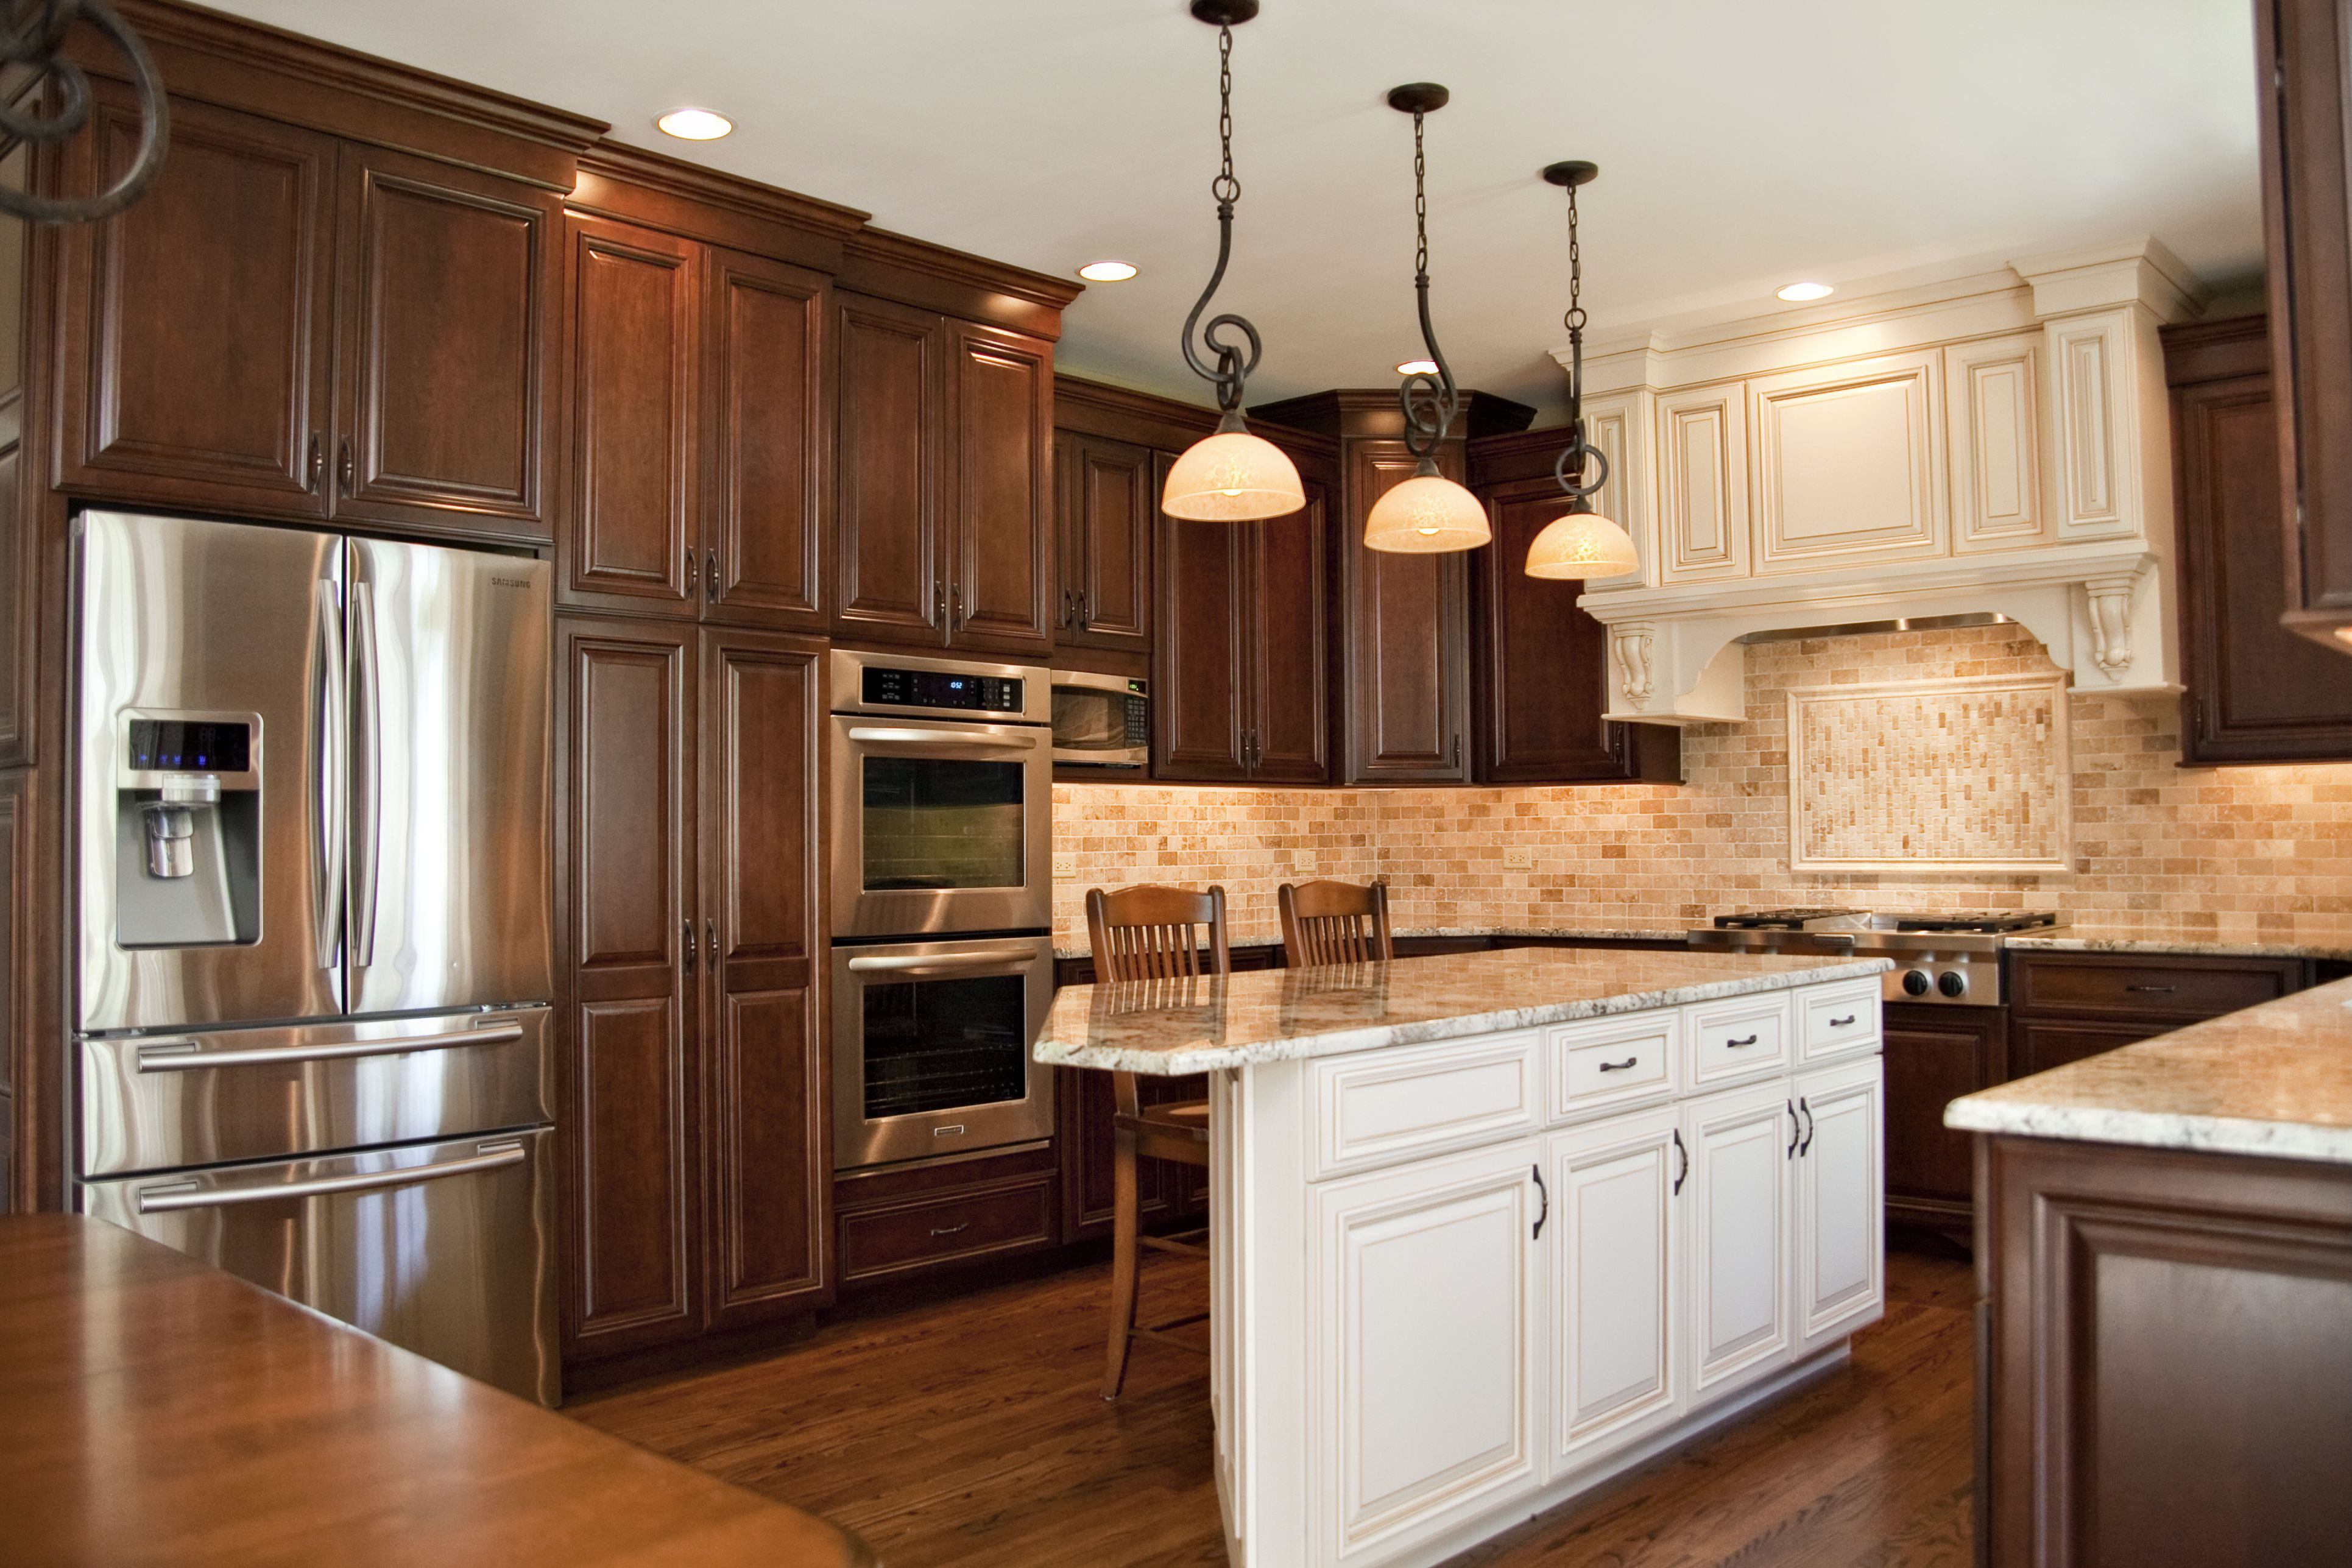 chocolate kitchen cabinets how to decorate aurora il remodel beautiful cherry cabinet in cog